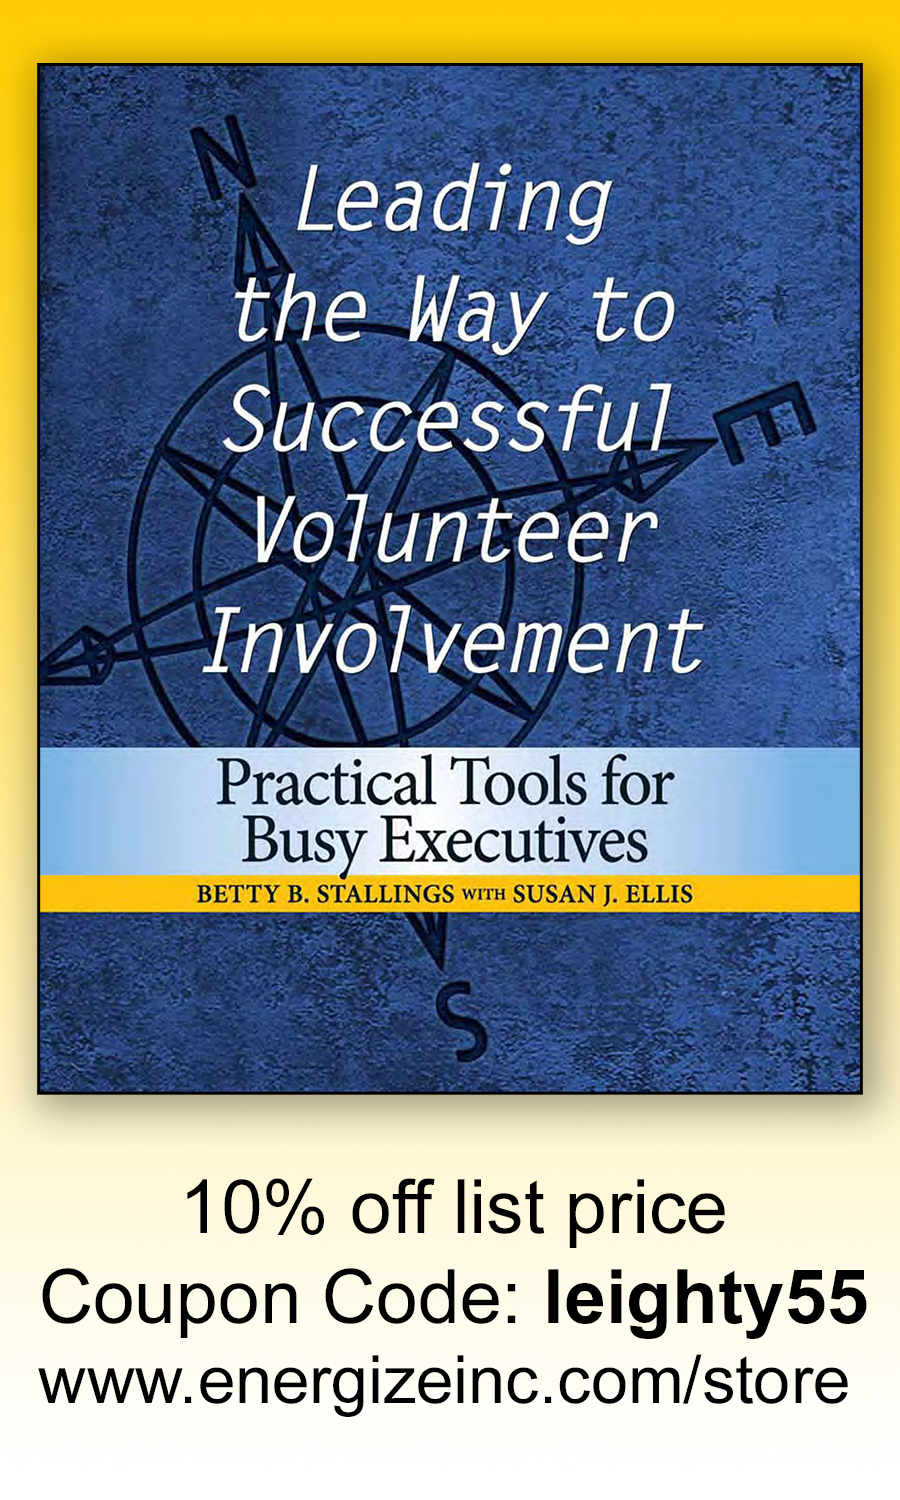 Leading the Way to Successful Volunteer Involvement